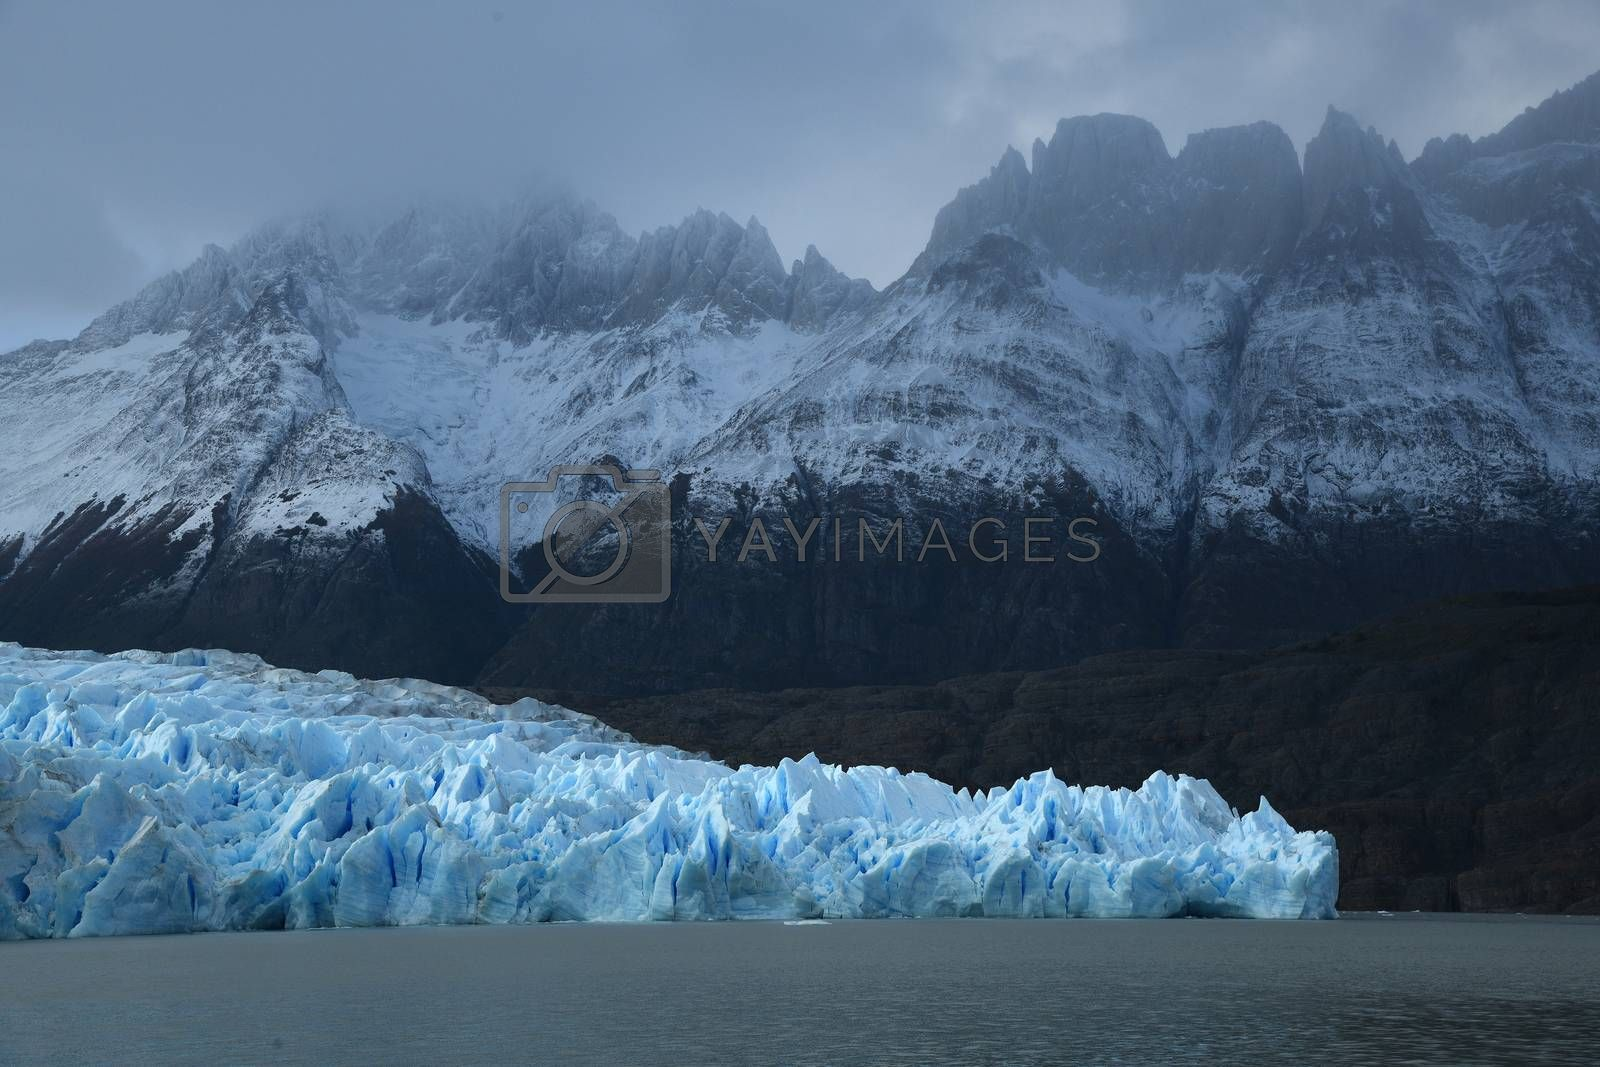 Royalty free image of Blue ice from Glacier Grey at Patagonia Chile by porbital